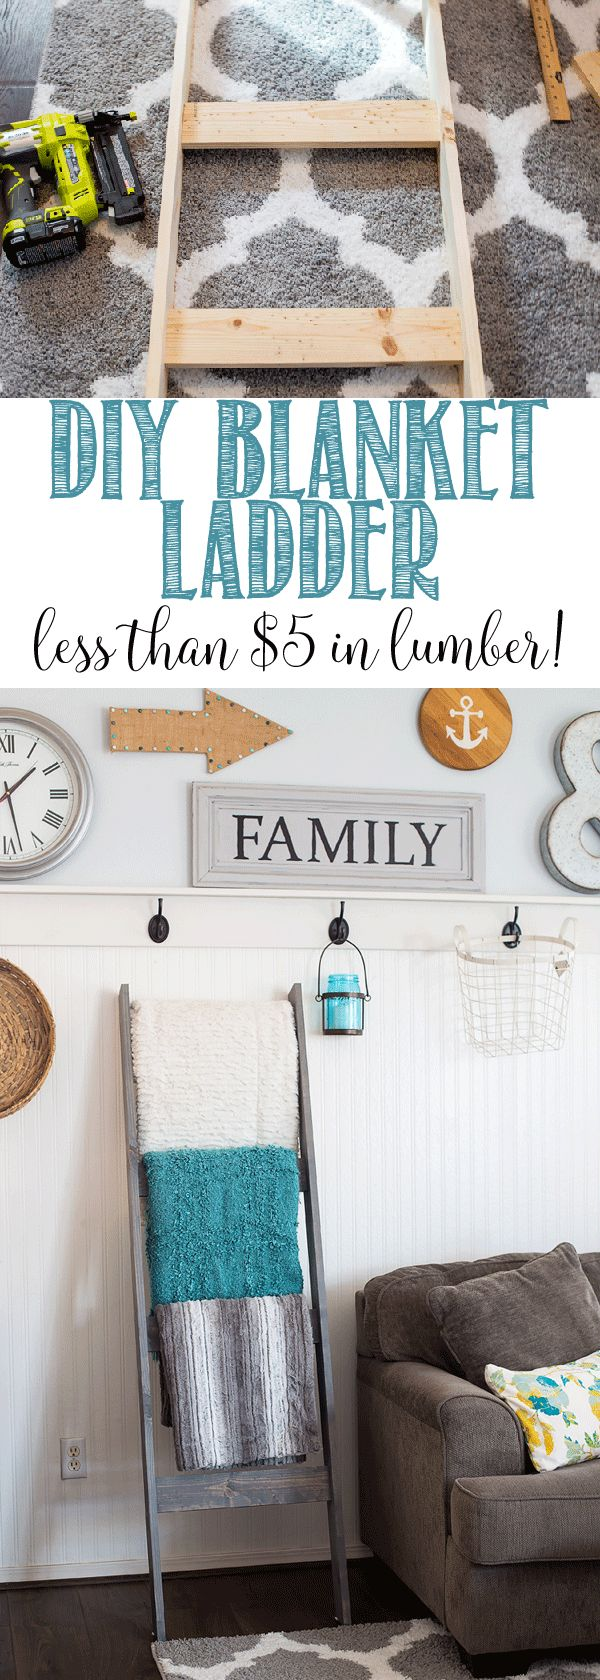 DIY Blanket Ladder for less than $5 in lumber!!!! Great step by